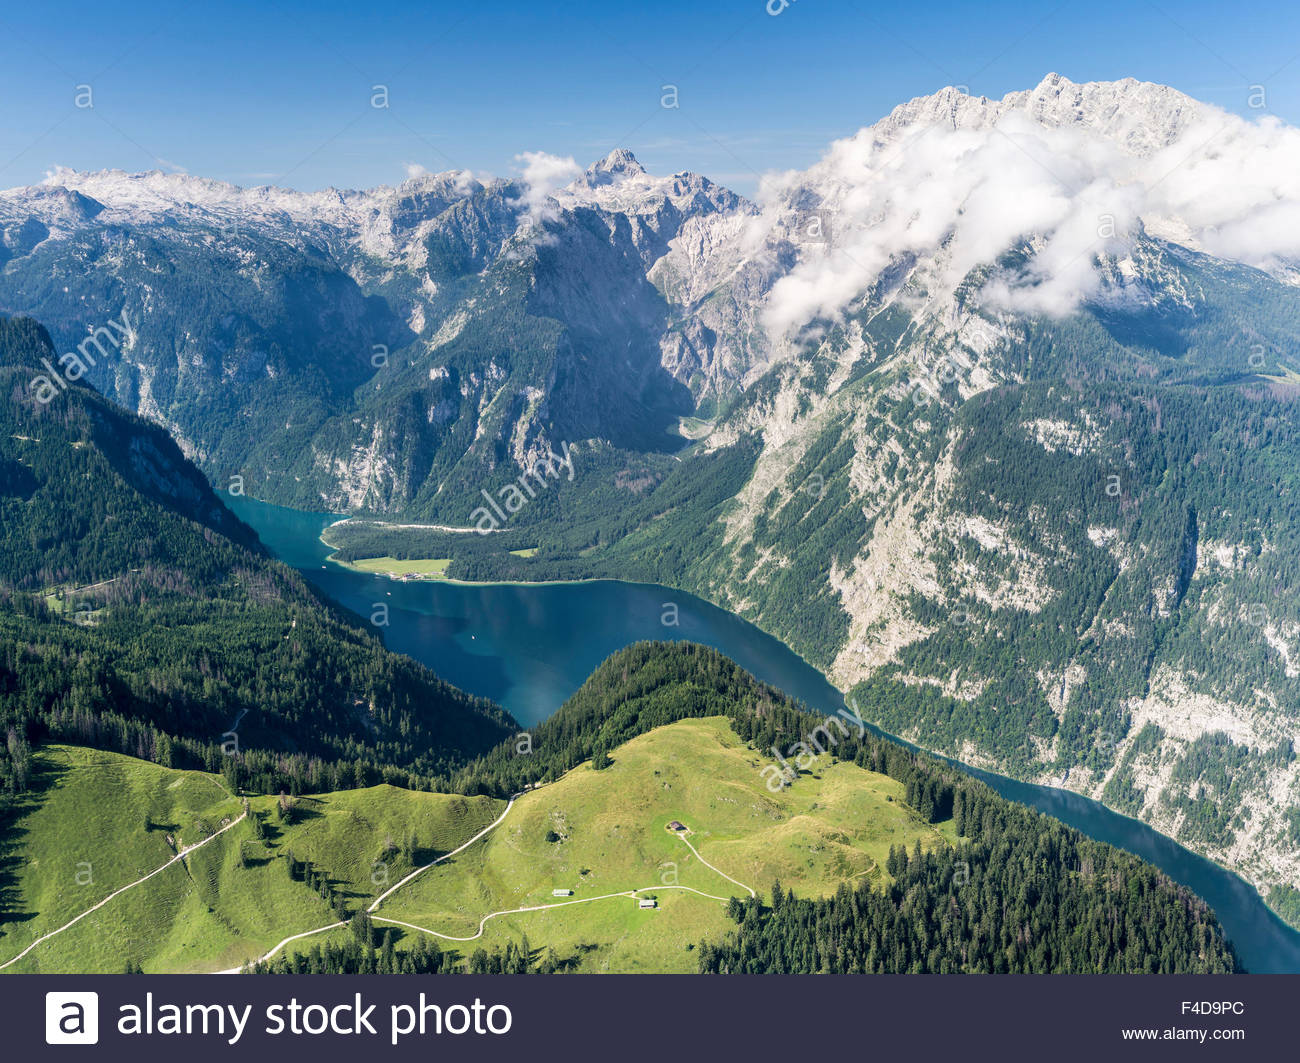 Königssee The Bavarian Alps, Berchtesgaden Alps, view from Mt. Jenner towards lake Koenigsee ...